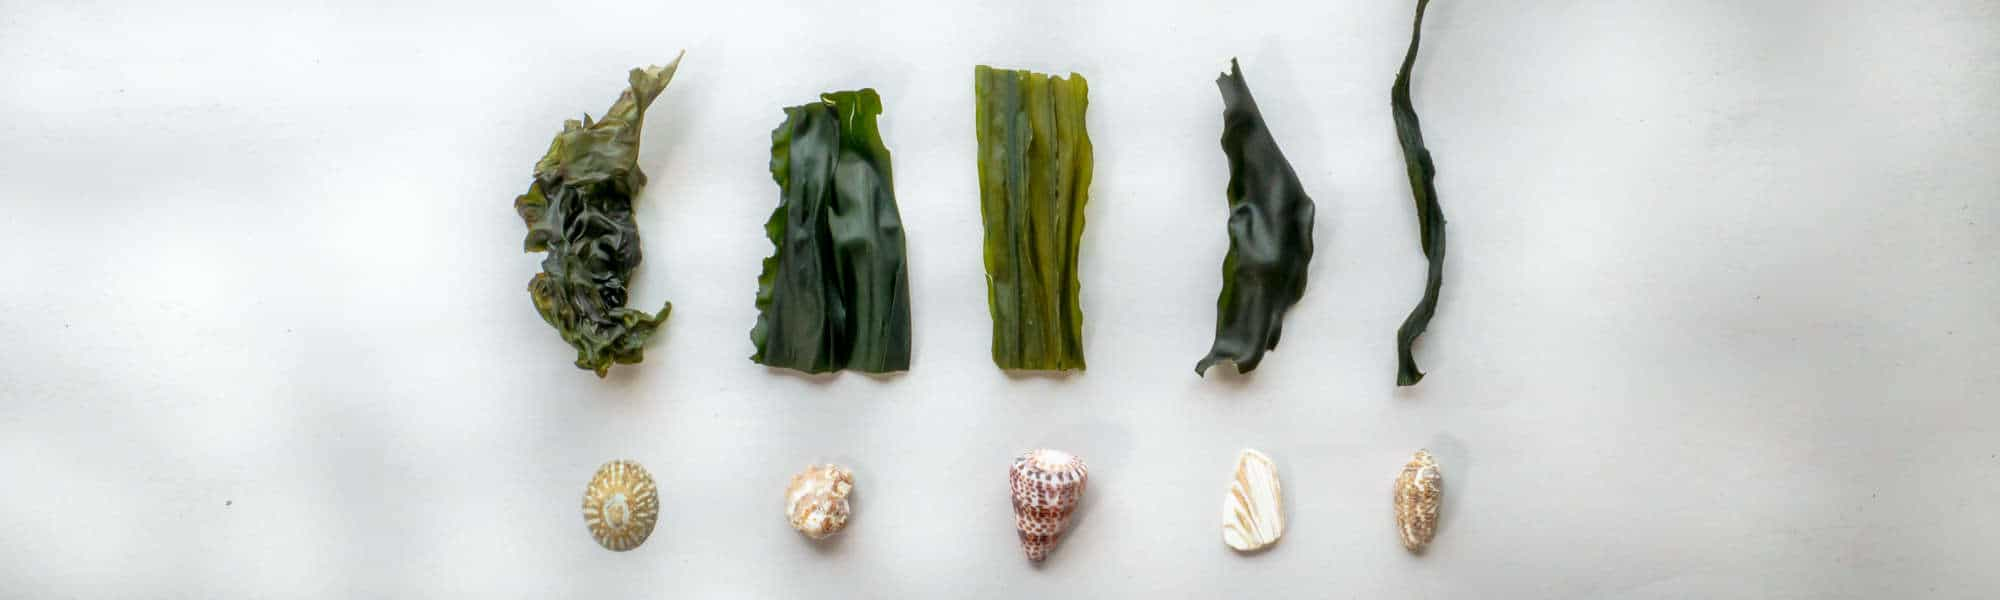 Whole Seaweeds Header - Nori, Wakame, Kelp, Kombu, Sea Palm